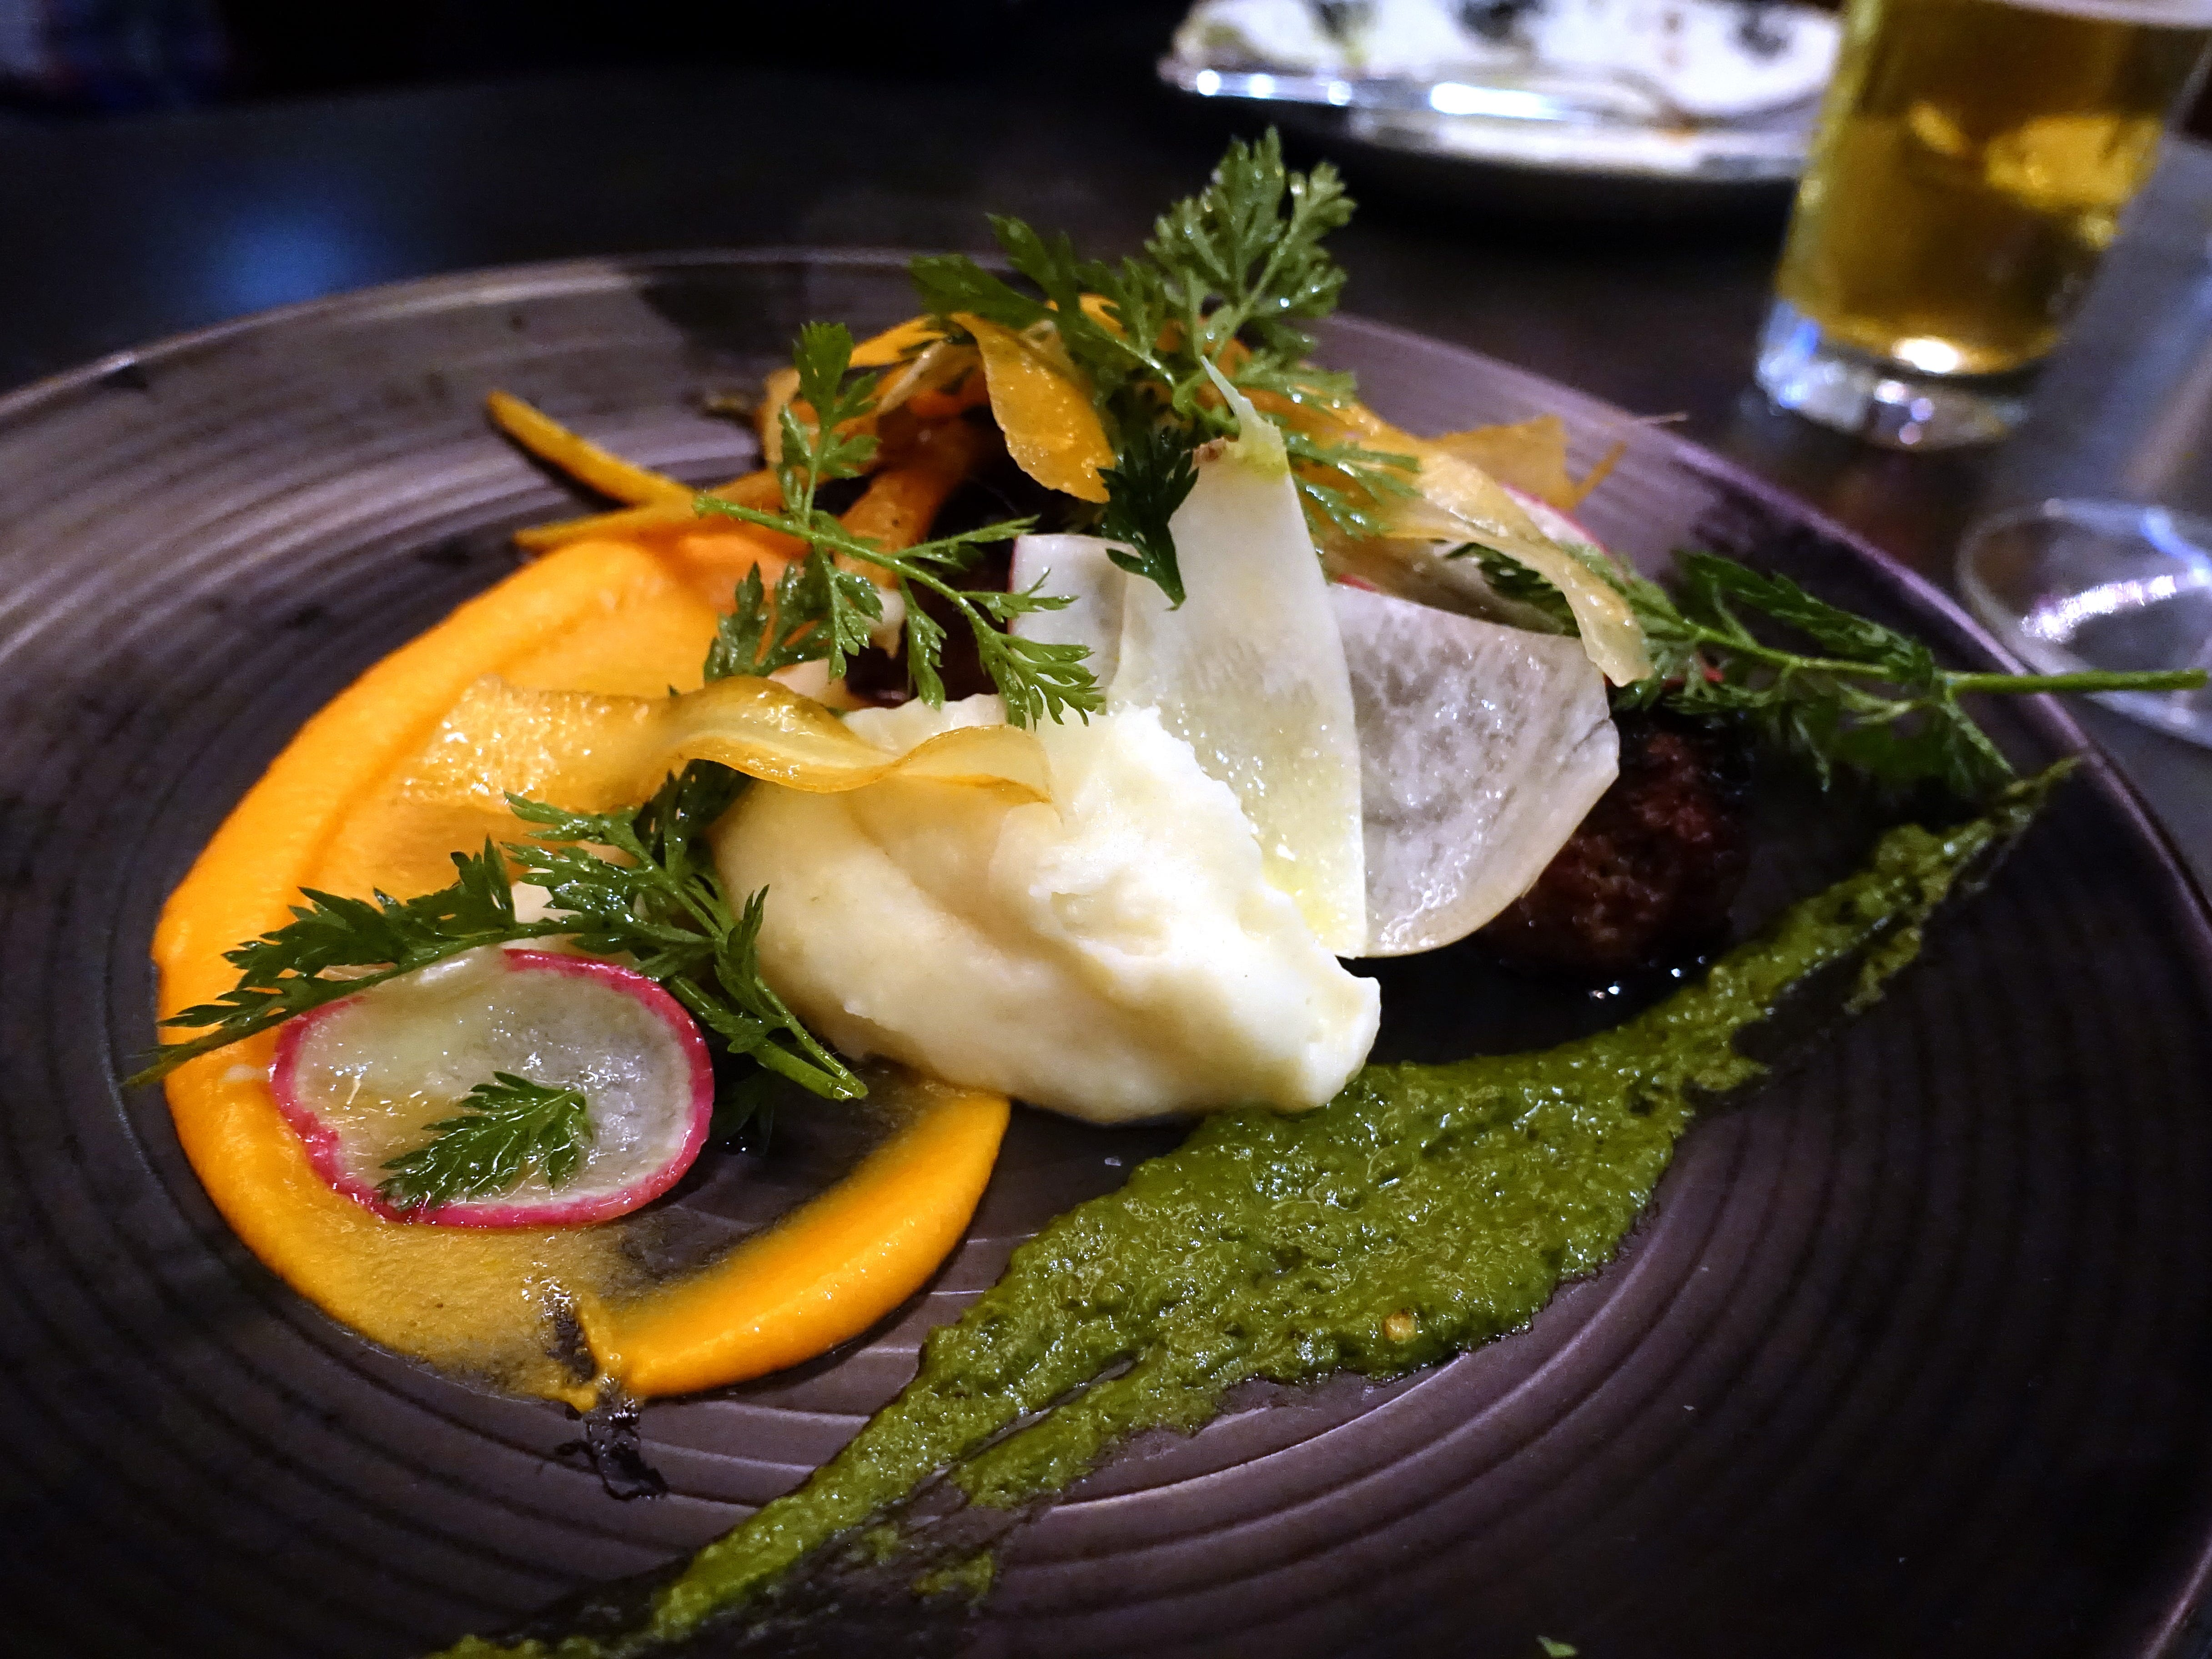 """BBQ'd"" meatloaf with variations of carrot, turnip, potato and carrot top chimichurri at The Larder + The Delta in Phoenix."